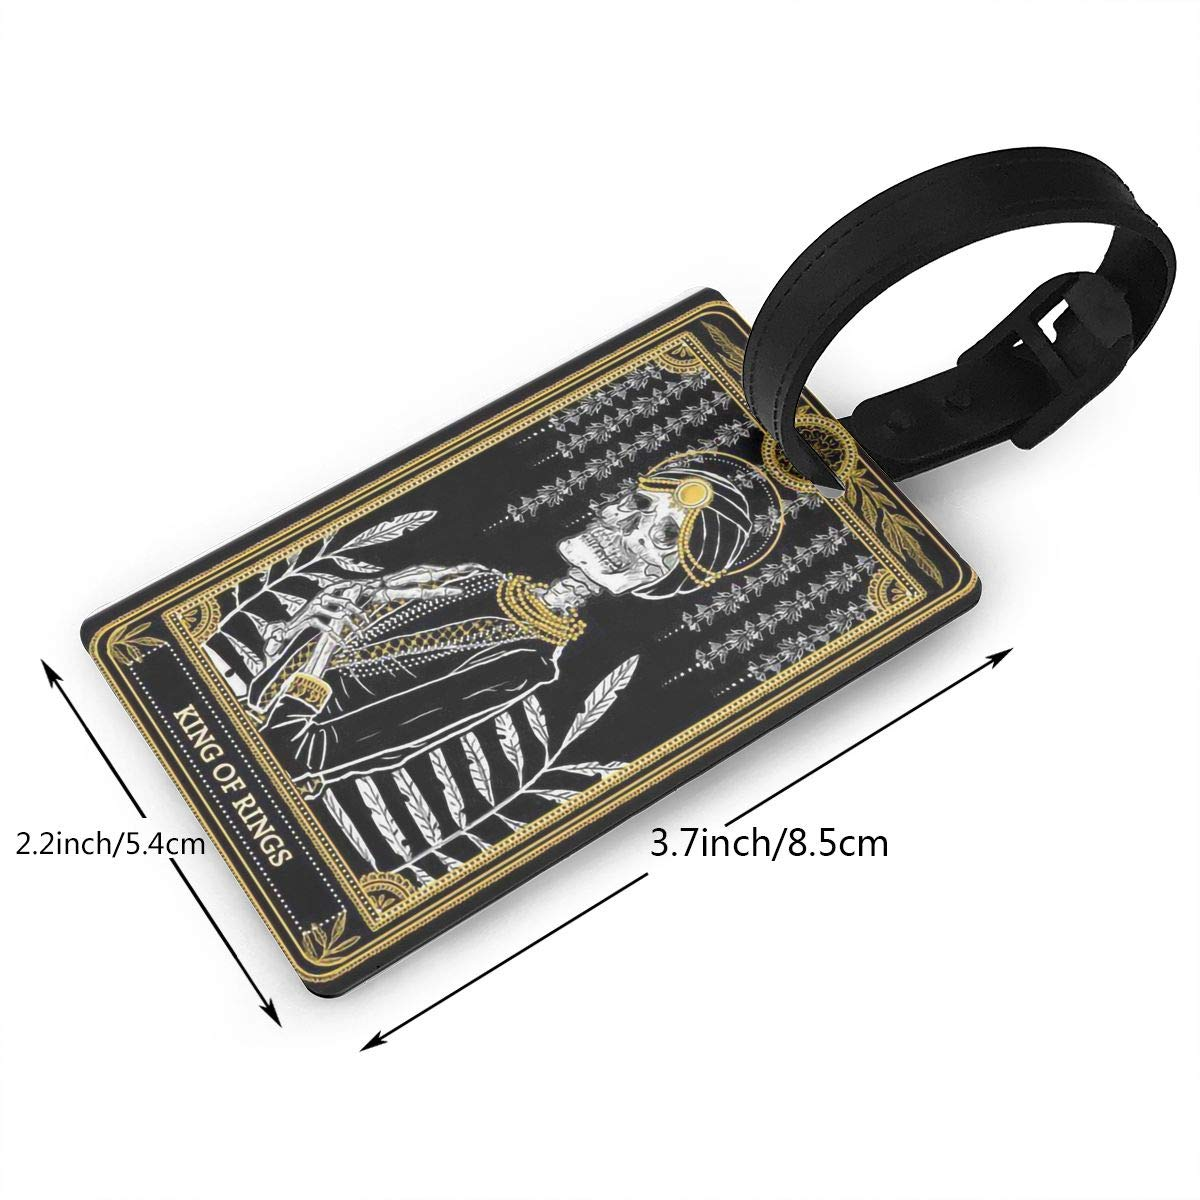 2 Pack Luggage Tags Tarot Cards King Of Rings Handbag Tag For Travel Bag Suitcase Accessories